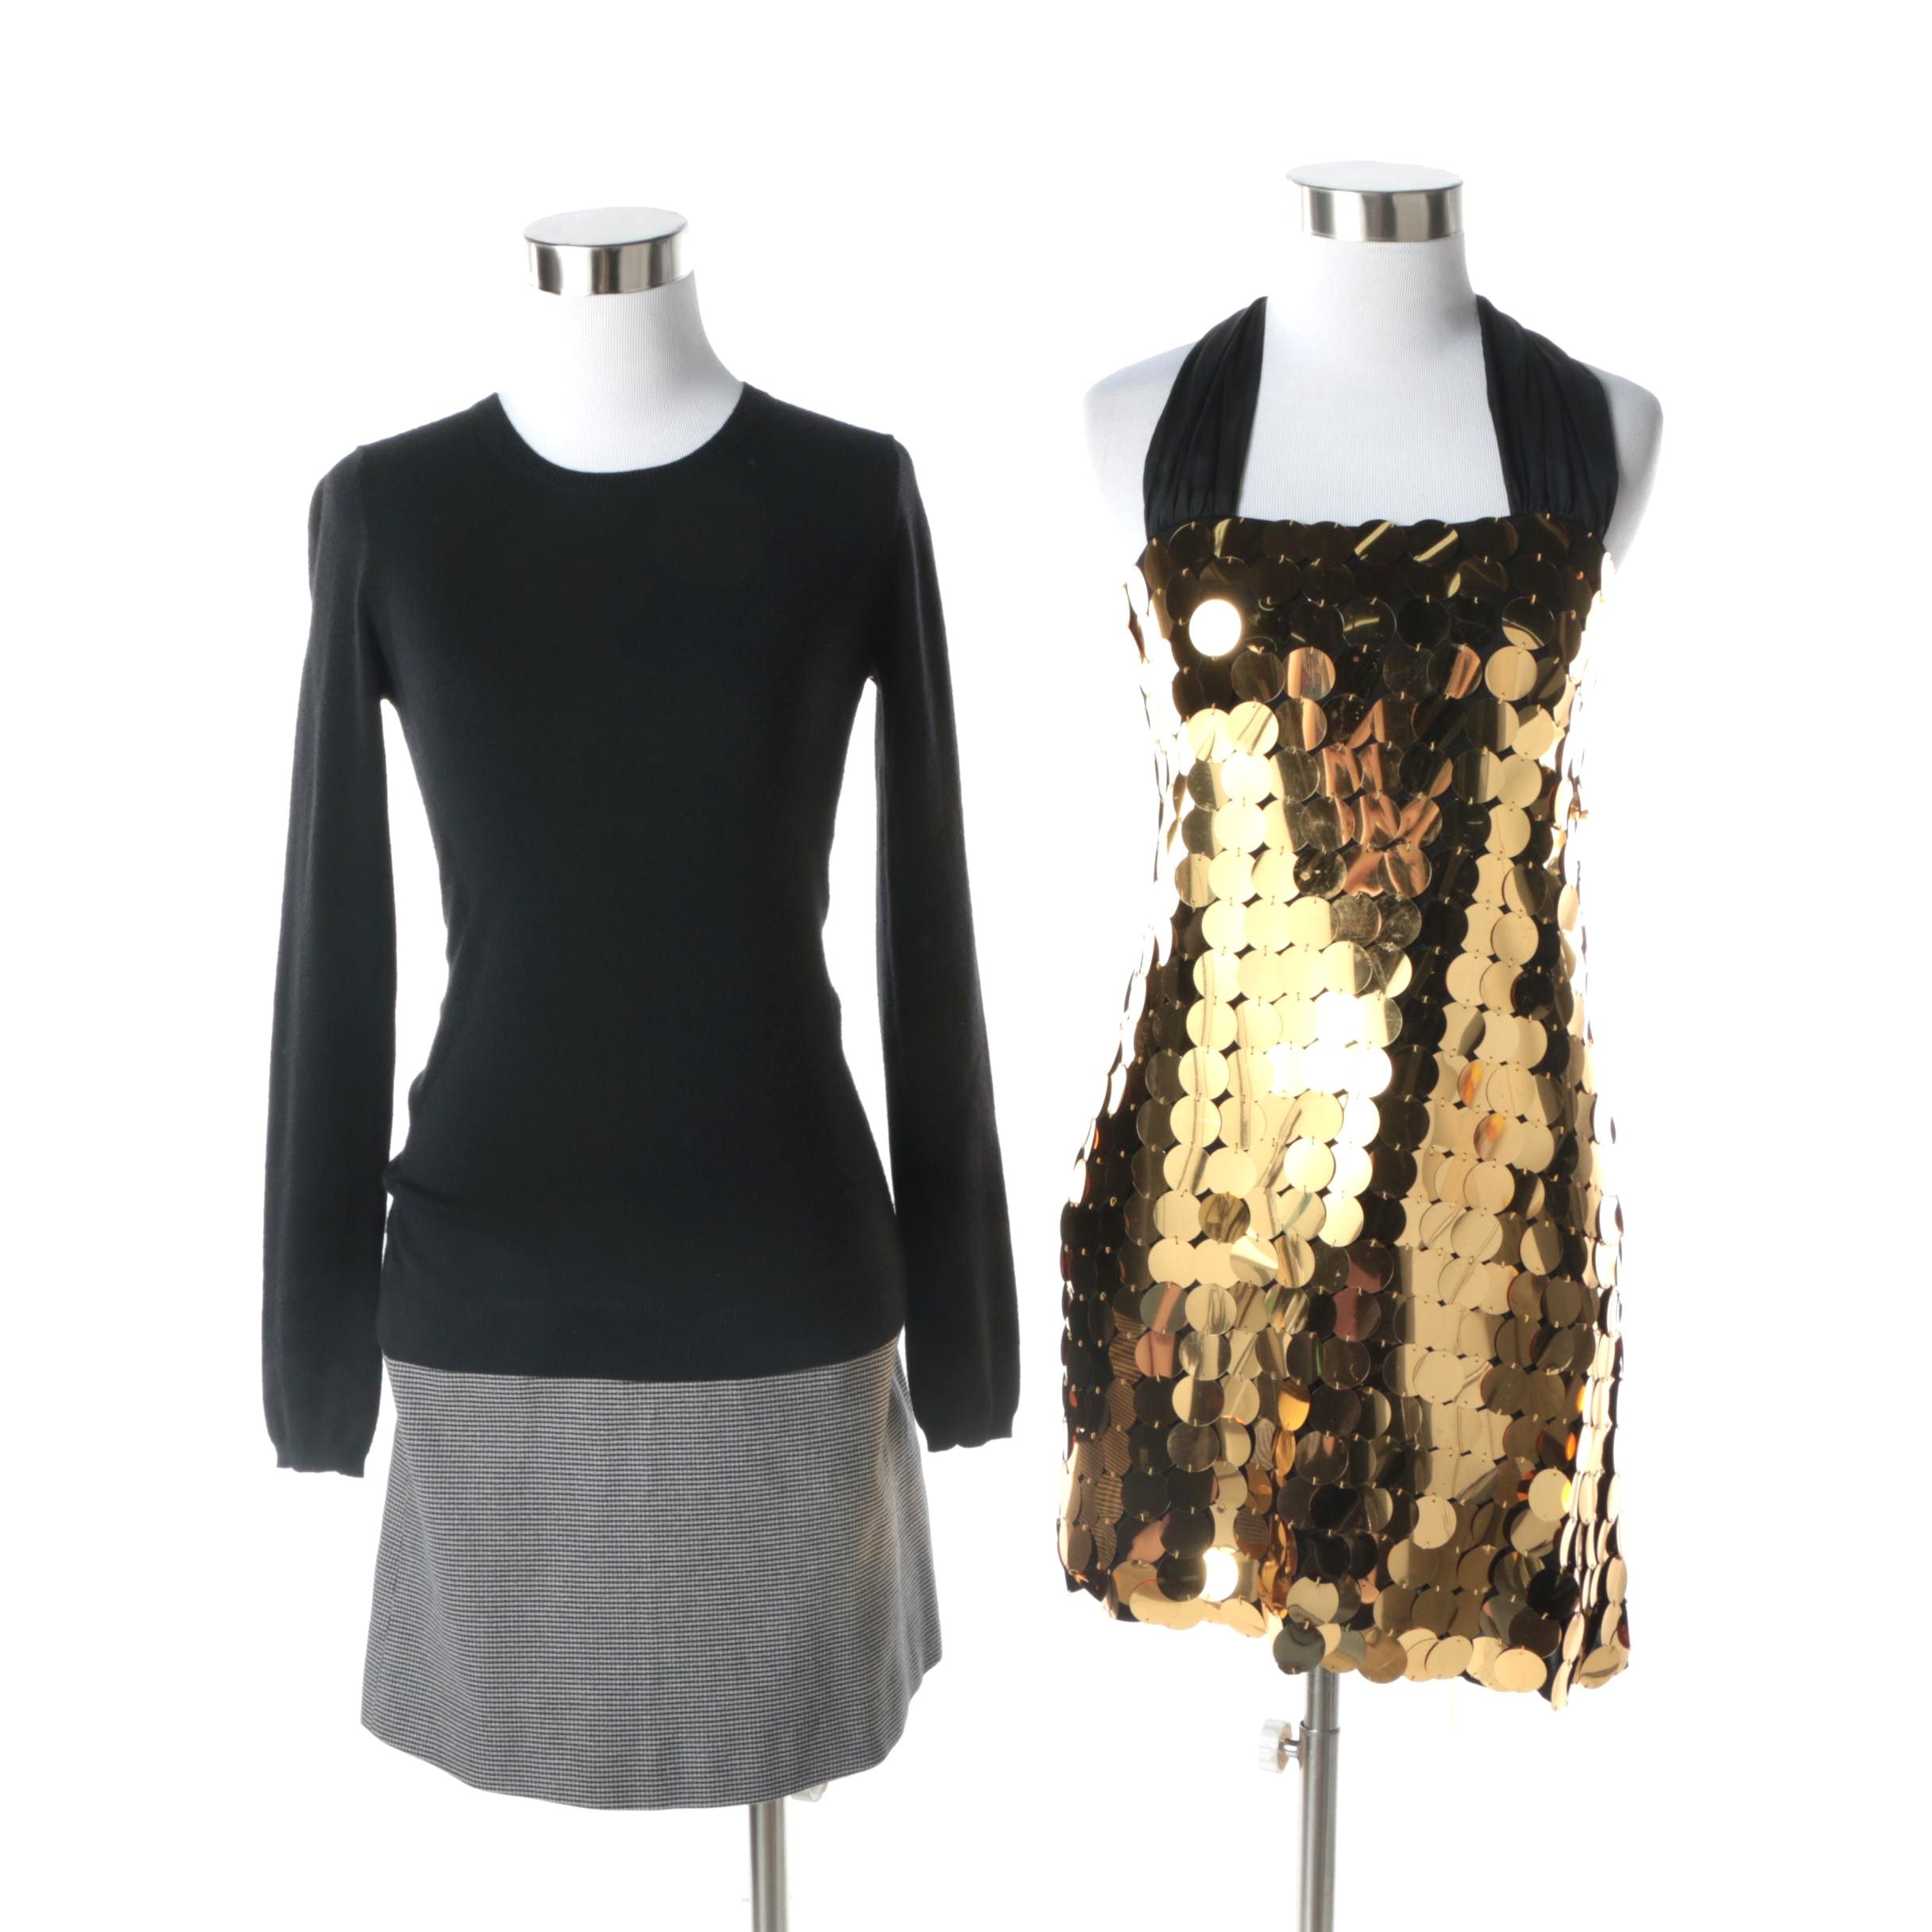 Theory Wool Sweater Dress and Alice + Olivia Gold Spangle Dress